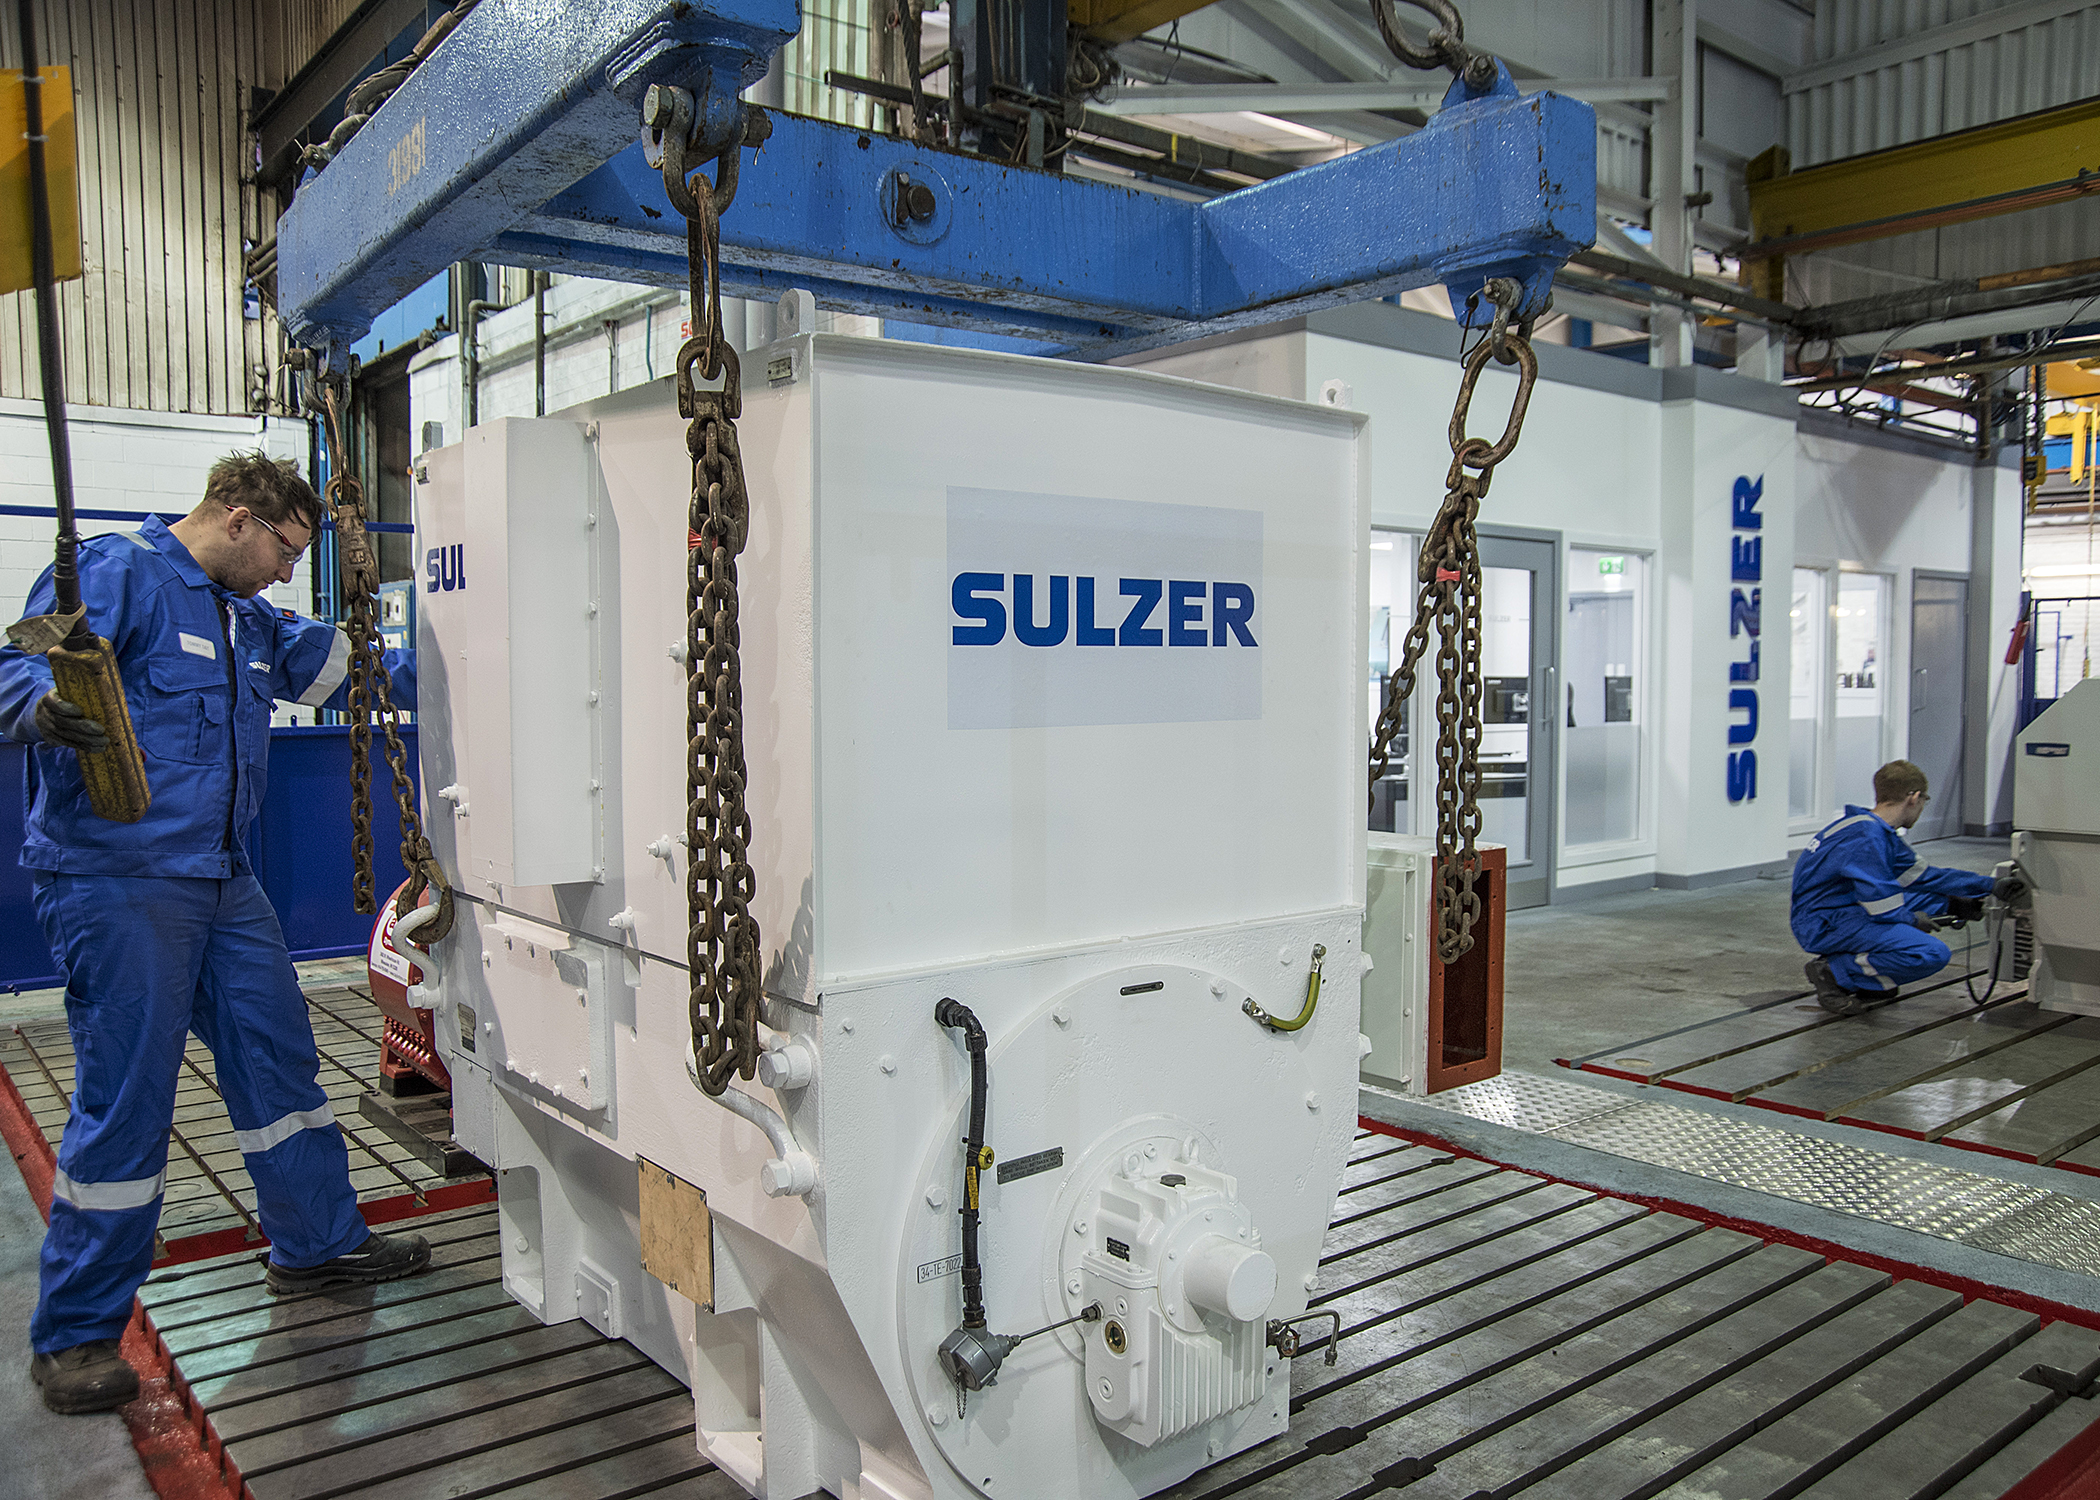 Sulzer doubles capacity of high voltage testing to improve repair times